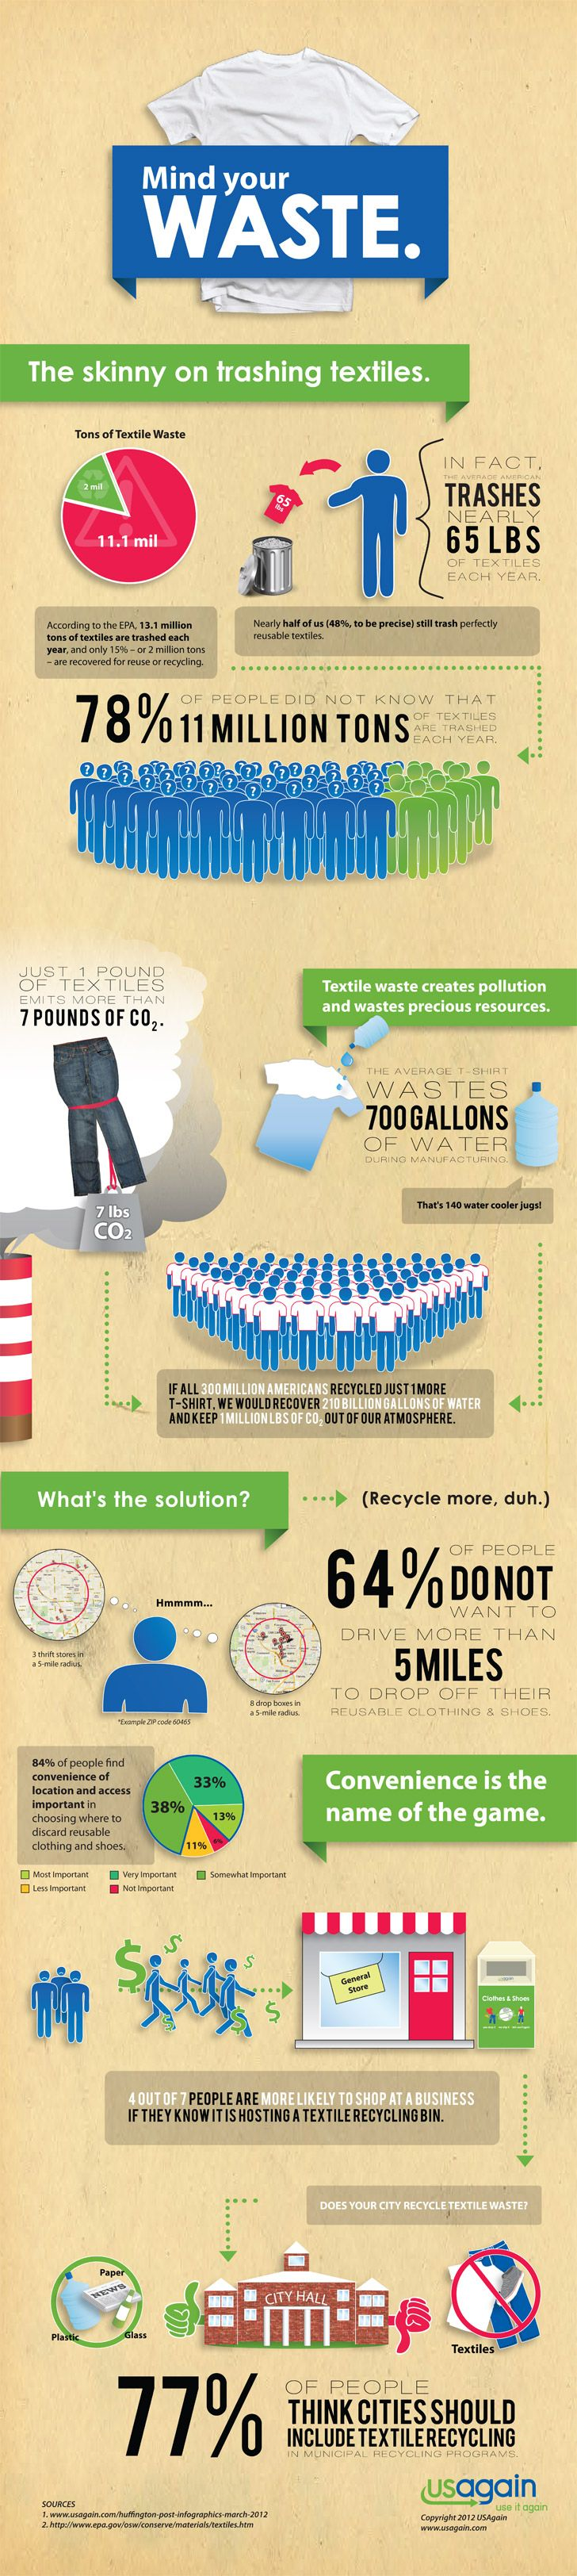 Infographic on How Many Pounds of Textile Americans Trash Every Year...An eye opener.